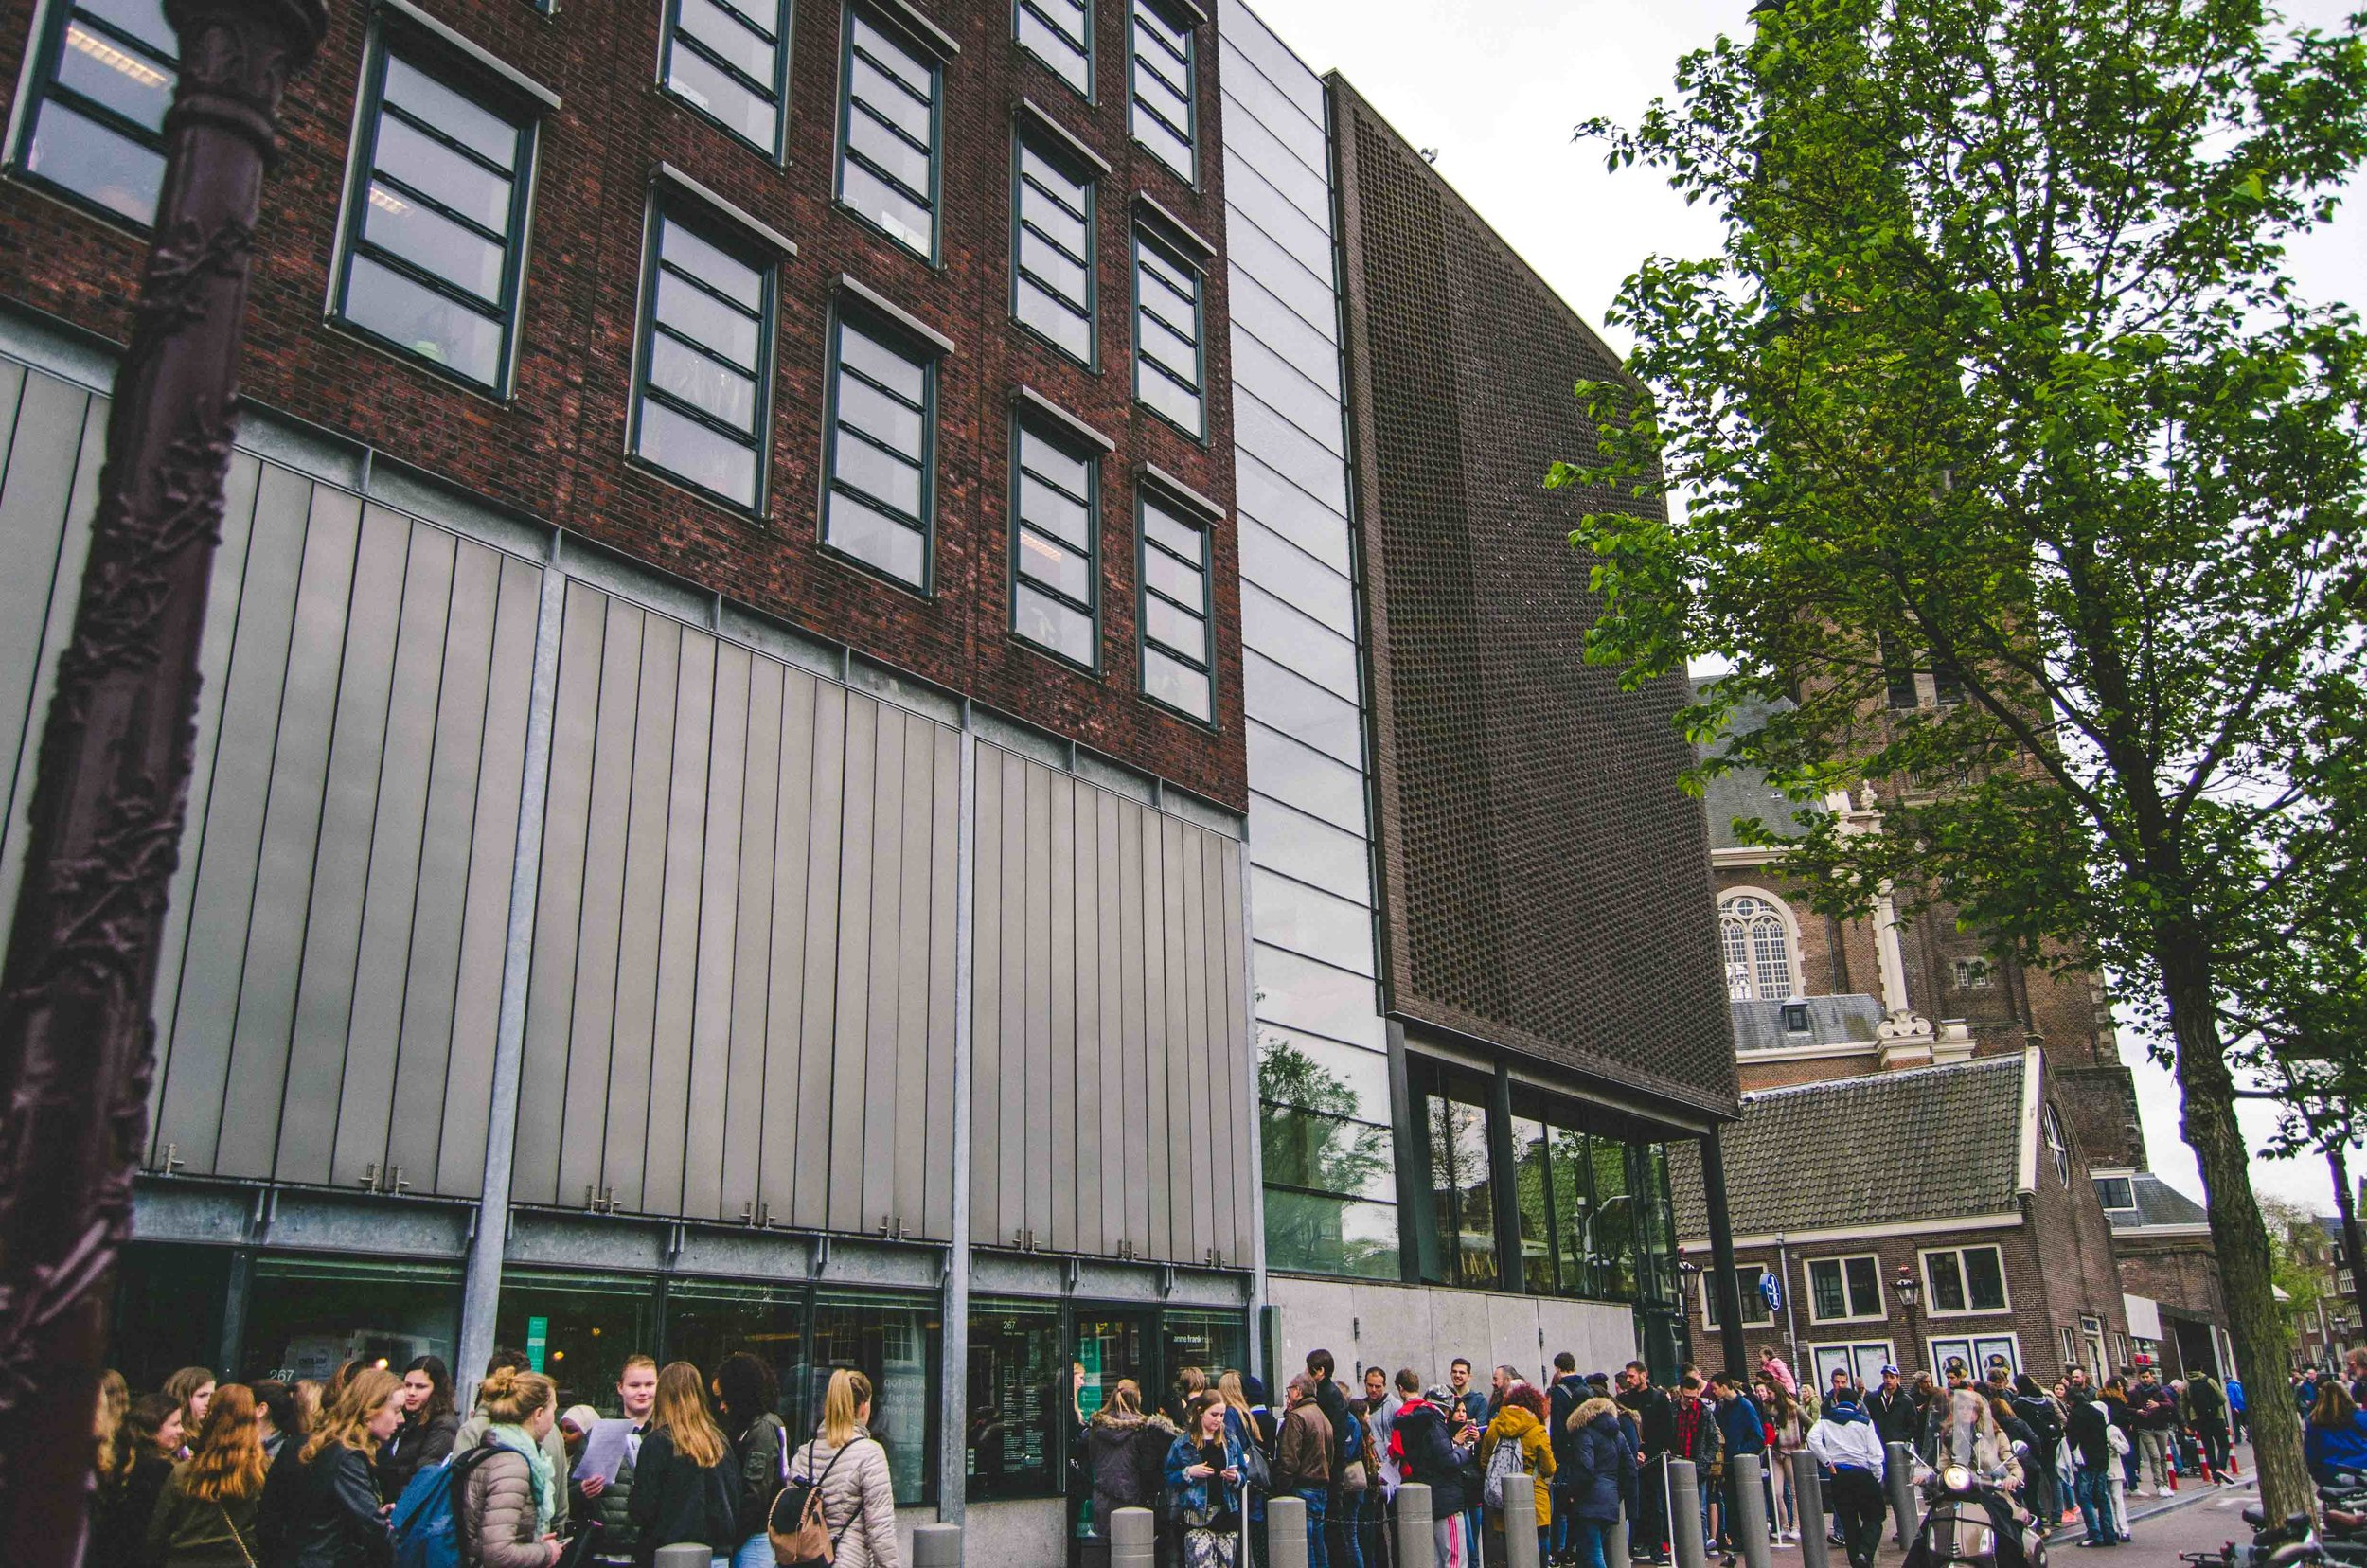 Line to get into Anne Frank's house